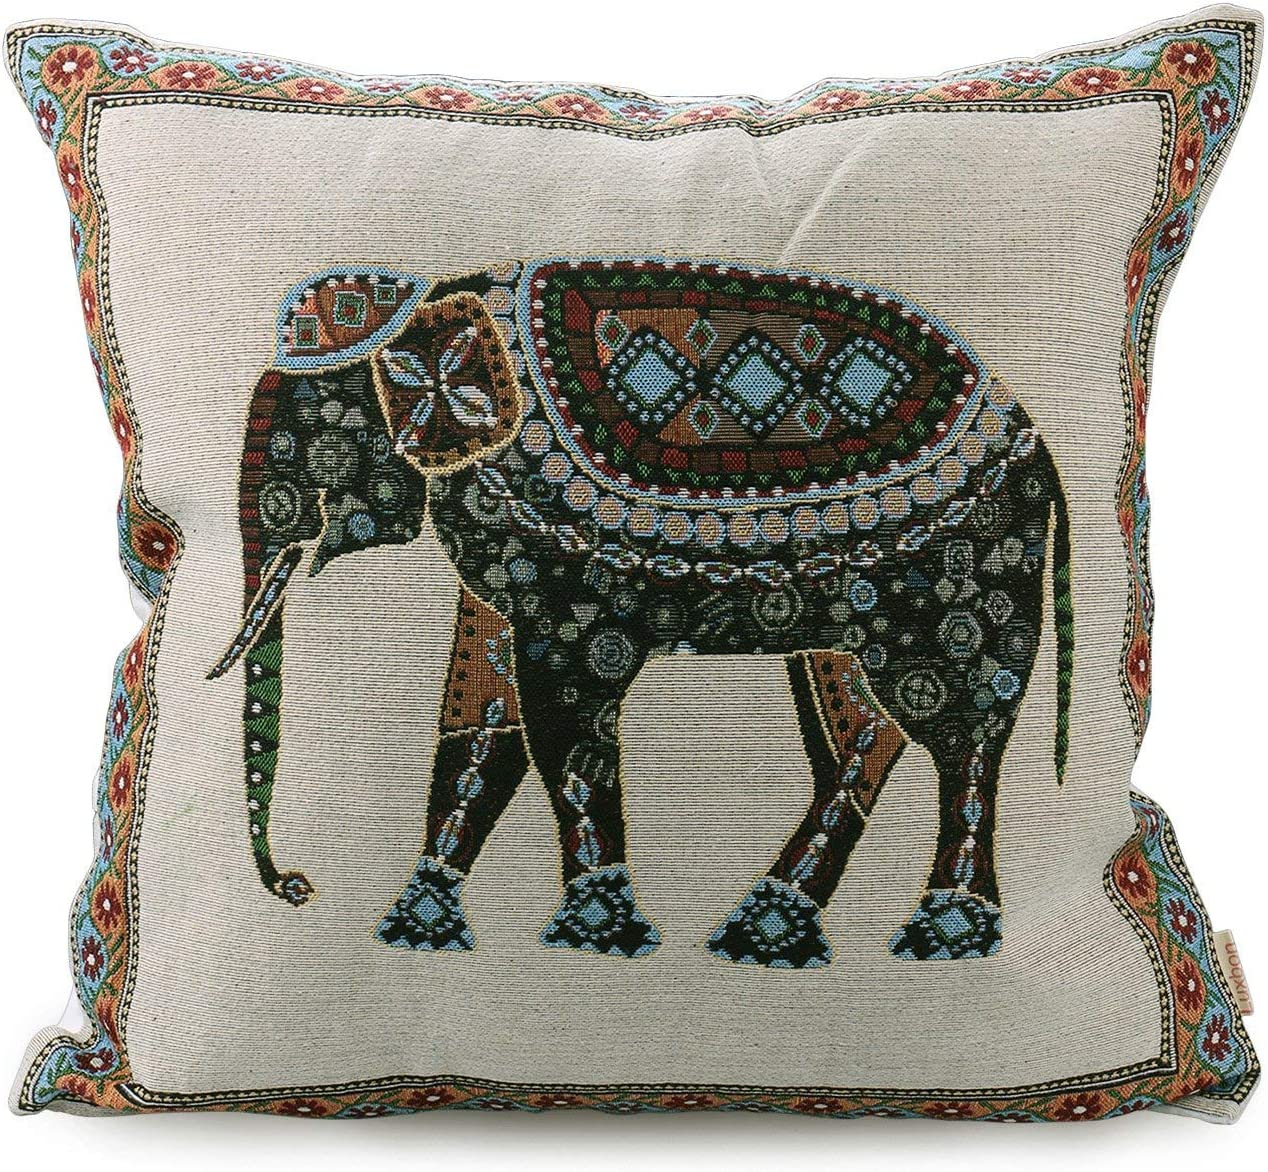 Amazon Com Luxbon Tapestry Jacquard Retro Indian Elephant Throw Pillow Case Elephant Decor Sofa Couch Chair Cushion Cover Decorative 18 X18 45x45cm Home Kitchen